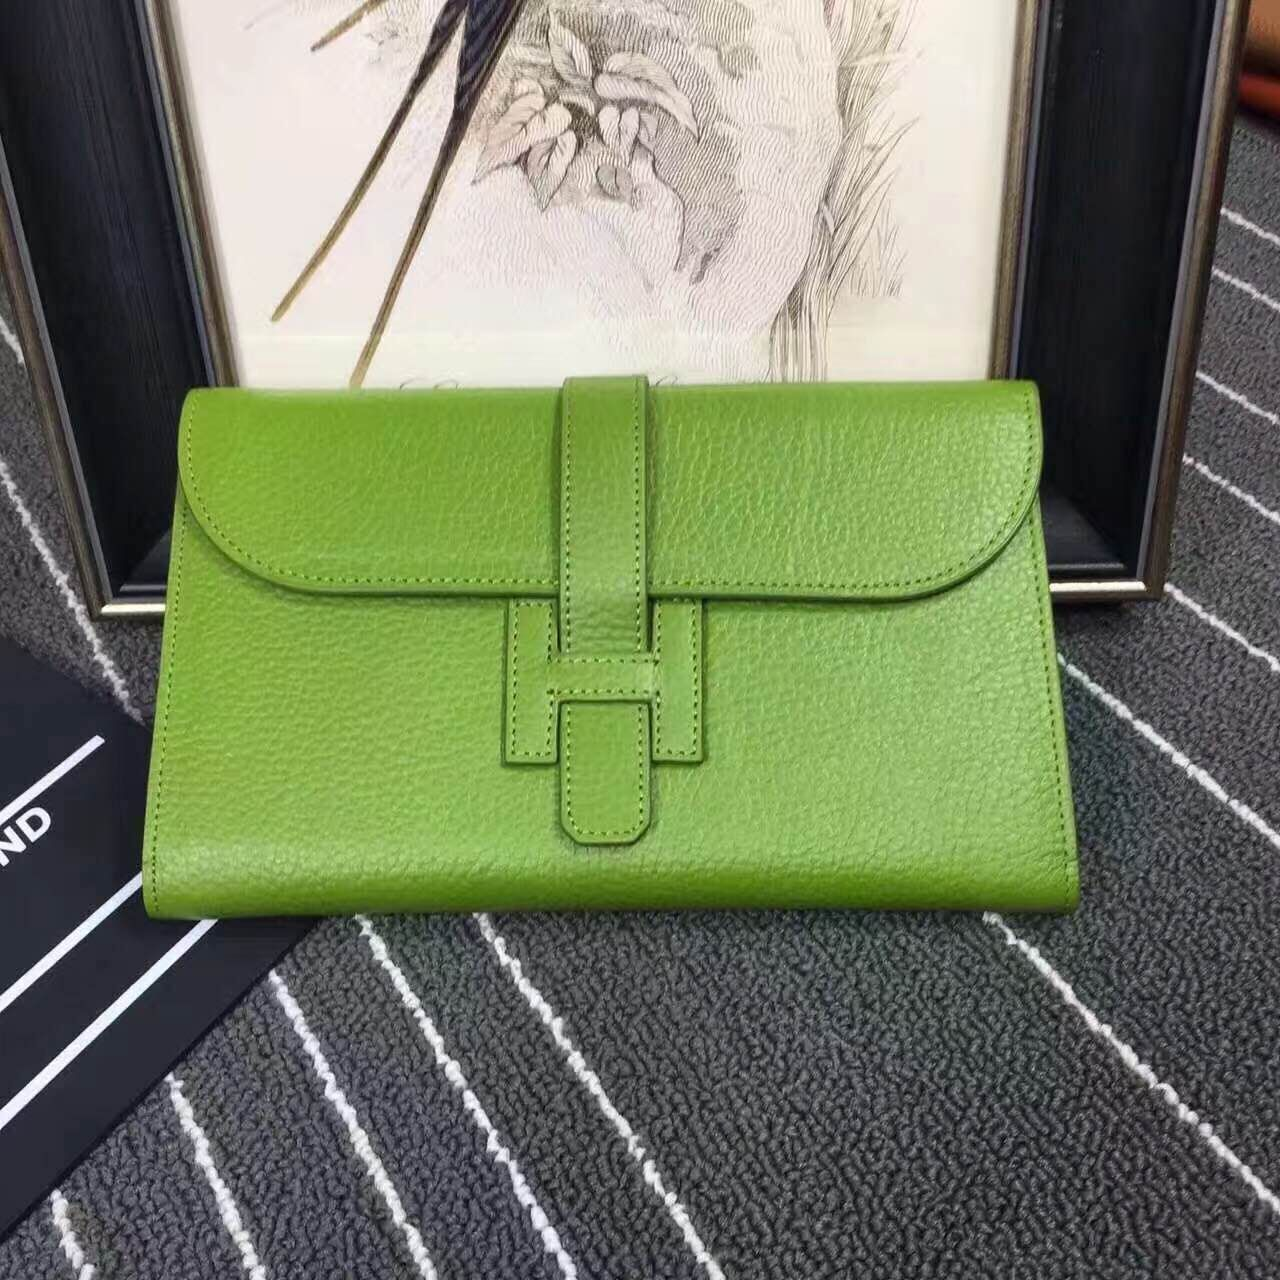 Cheap Hermes Wallets wholesale No. 52